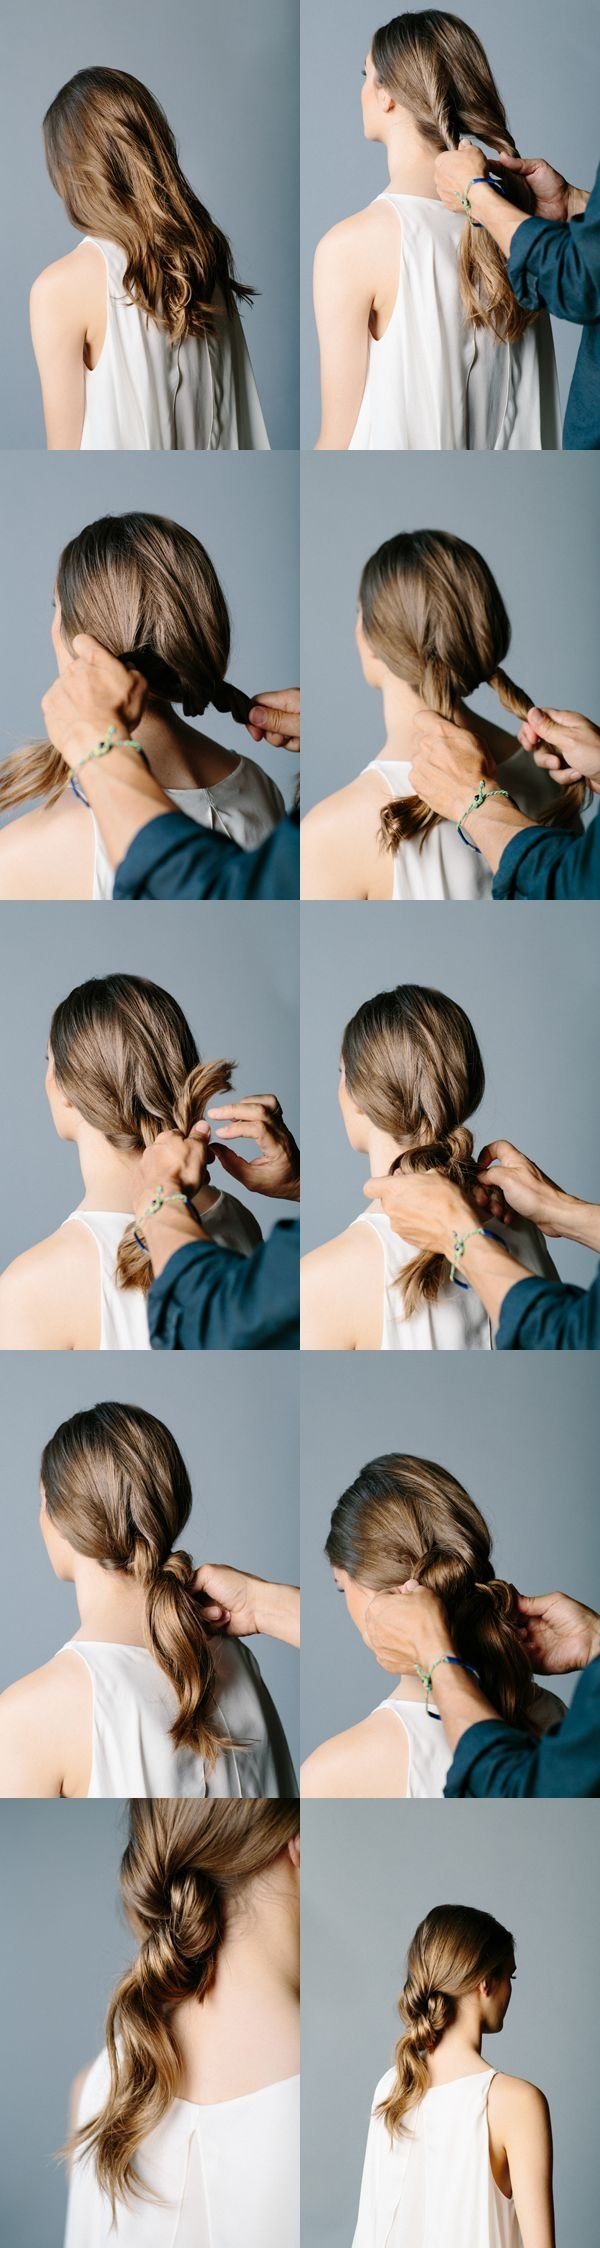 31 Quick And Easy Hairstyle For Busy Women